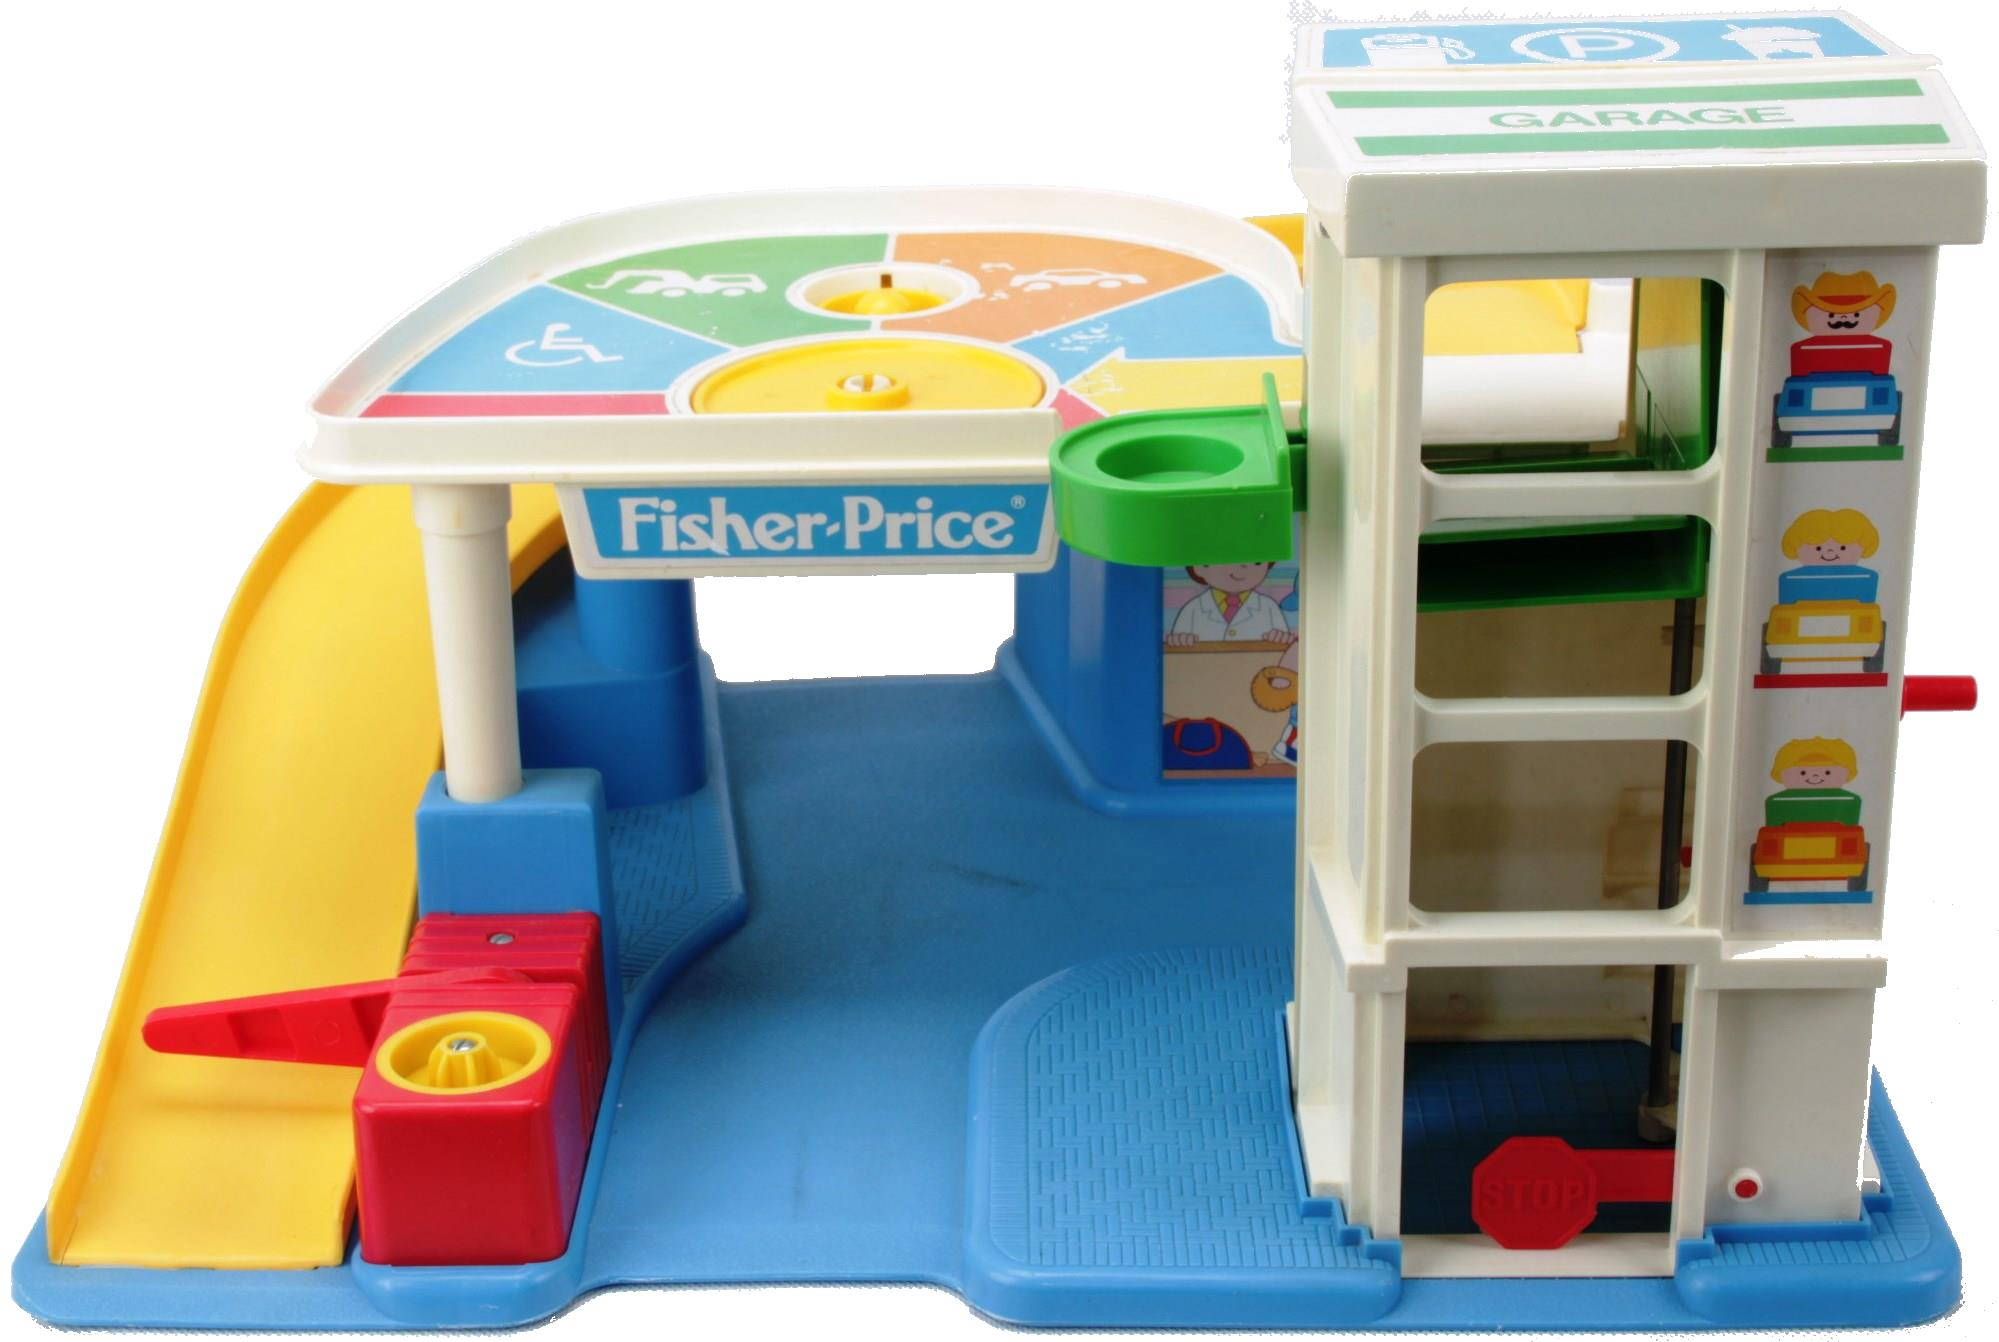 Garage Little People : Fisher price chunky little people parking garage